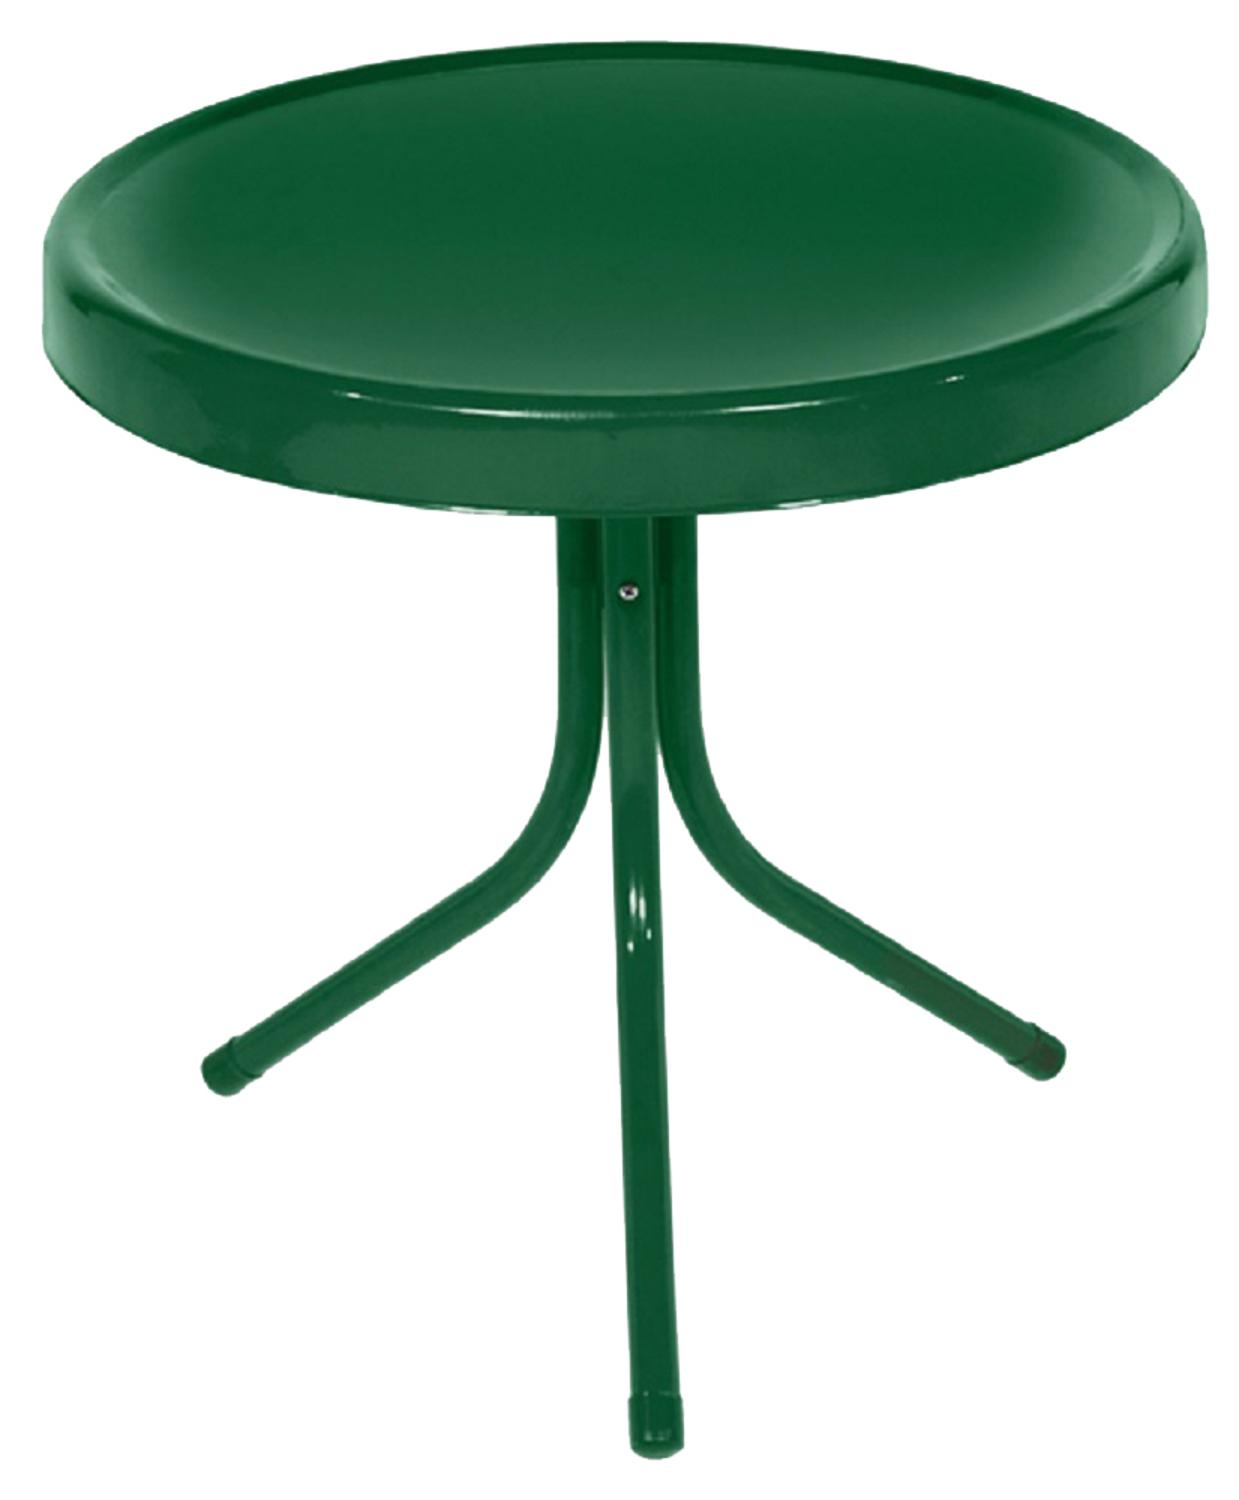 northlight hunter green retro metal tulip outdoor side table bar height legs wood small black sofa blue living room chairs adjustable chair cherry corner accent monarch